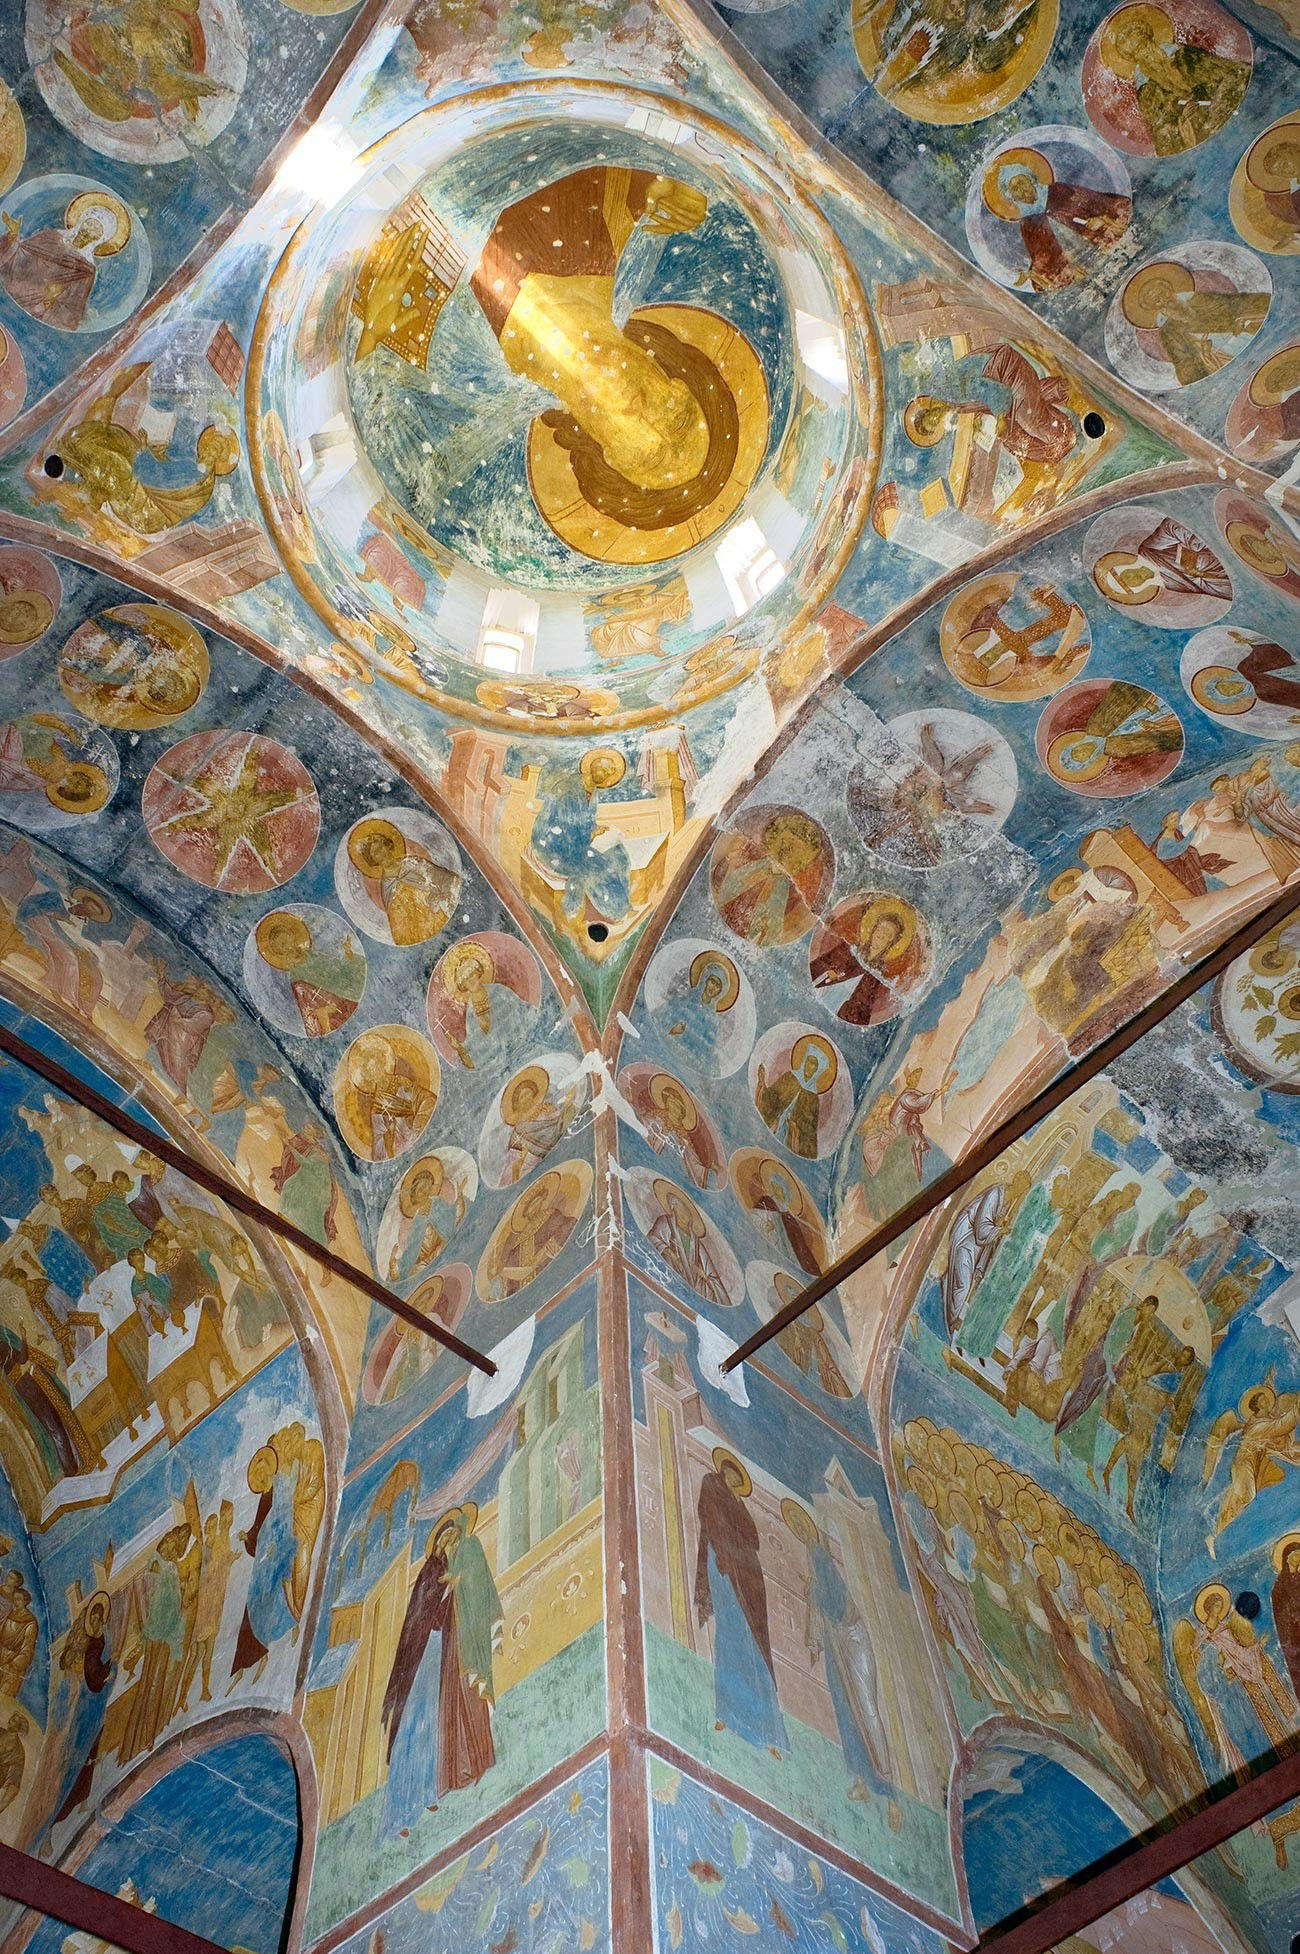 Cathedral of Nativity. Dome with image of Christ Pantokrator. Left: southwest pier with scenes from the Great Akathist (hymn to Virgin Mary). June 1, 2014